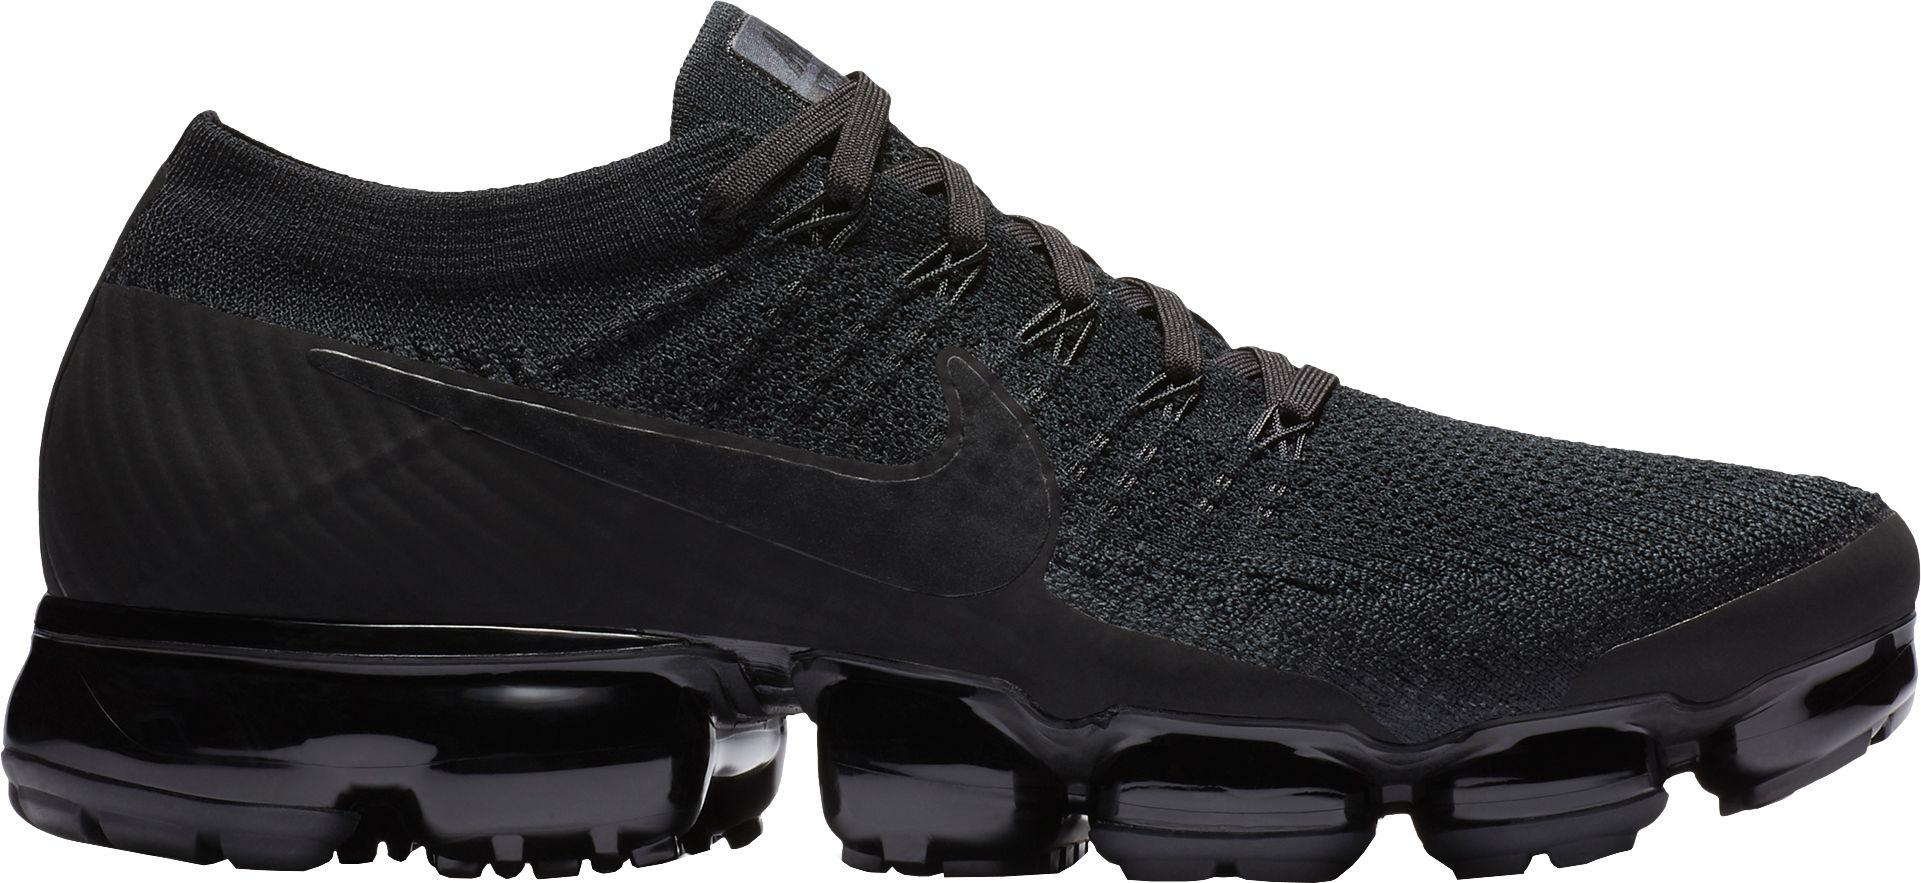 ee93f492cc41e1 Lyst - Nike Air Vapormax Flyknit Running Shoes in Black for Men